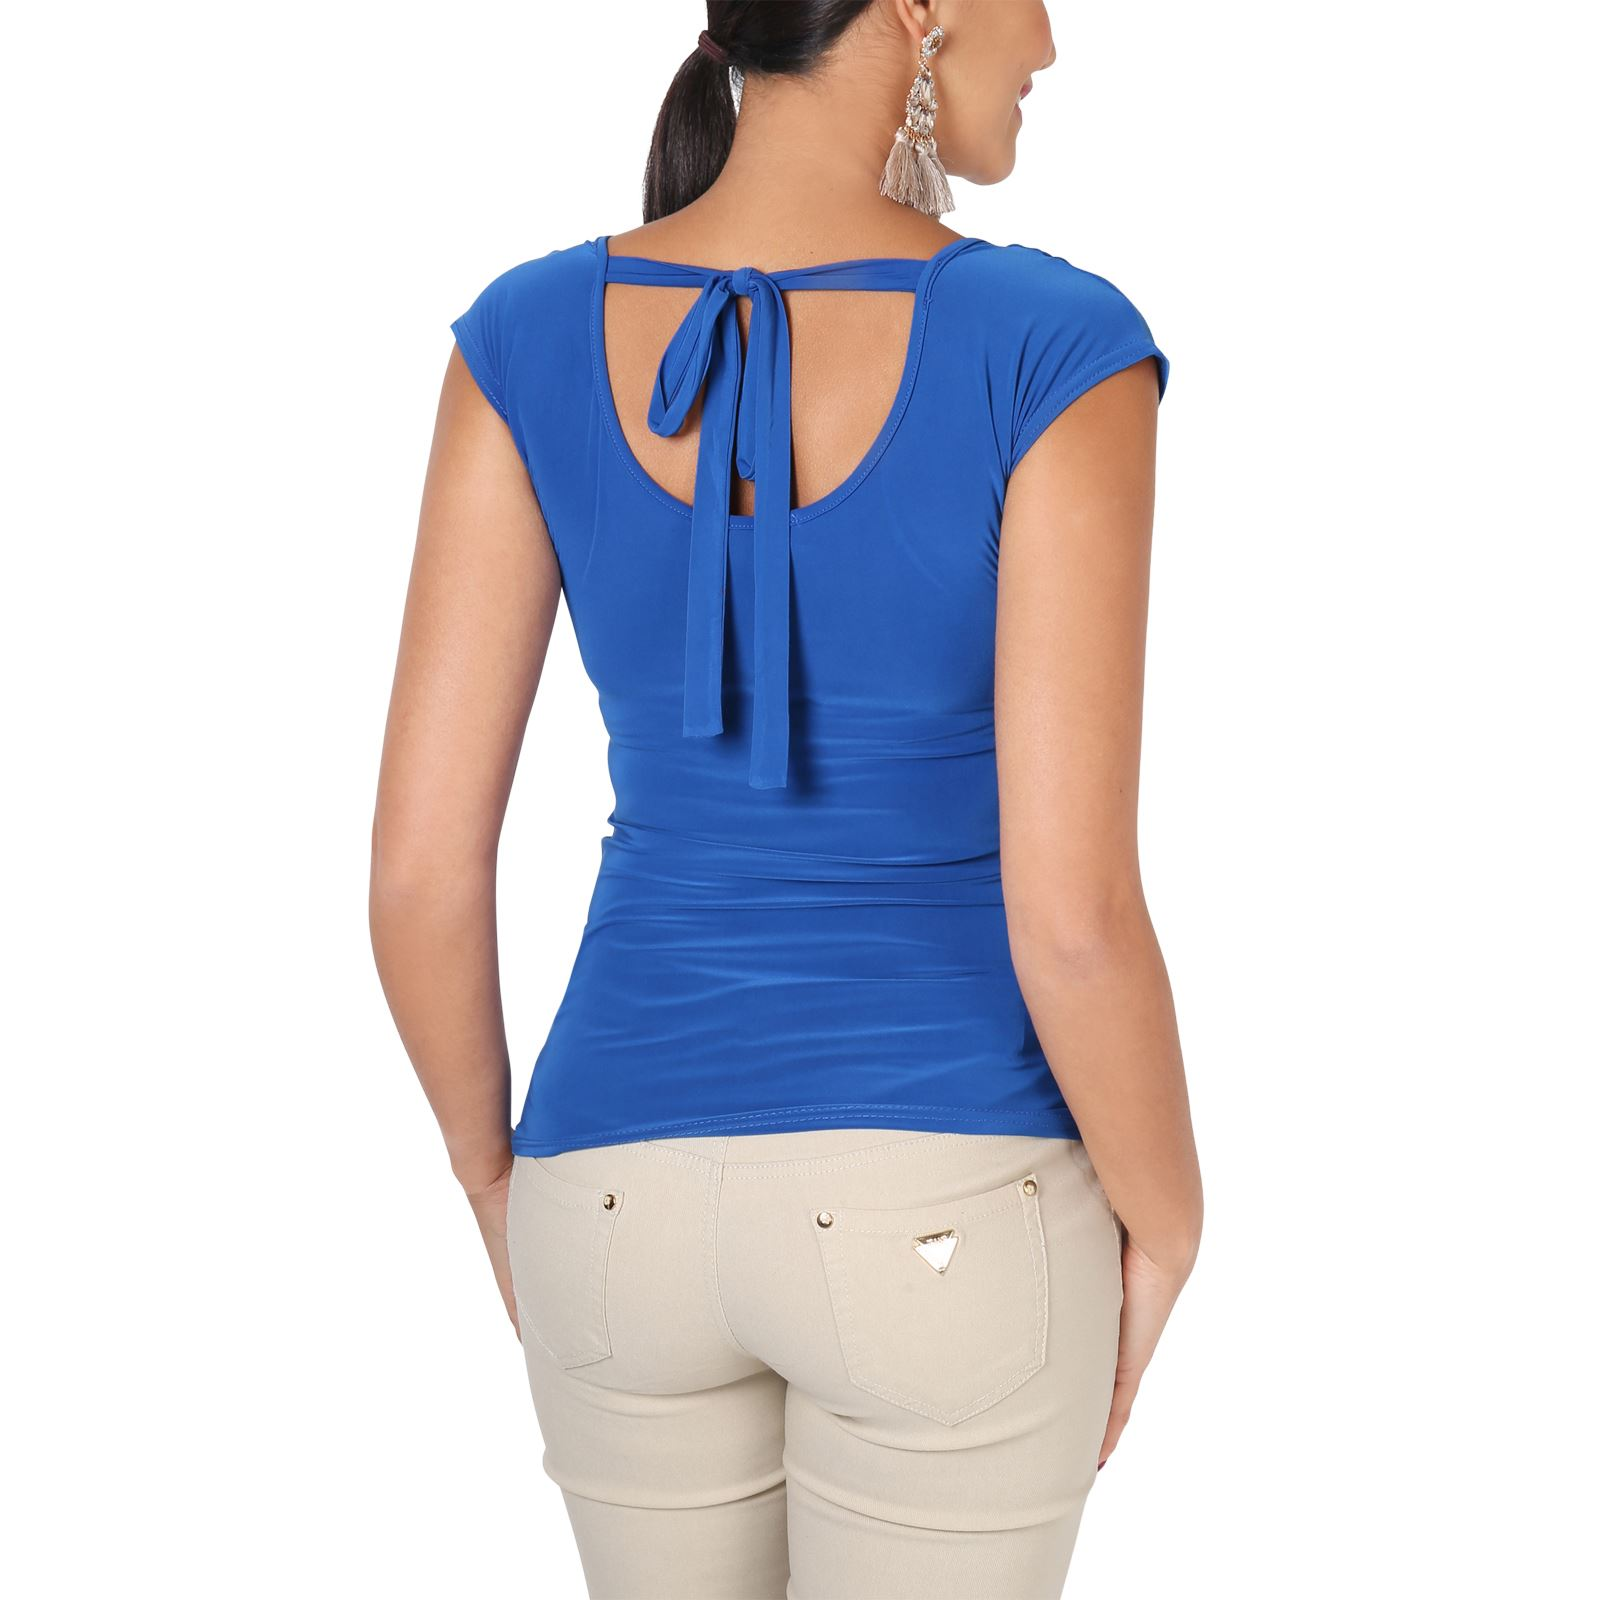 Womens-Ladies-Cowl-Neck-Blouse-Sleeveless-Stretch-Summer-Jersey-Top-Size-8-20 thumbnail 16